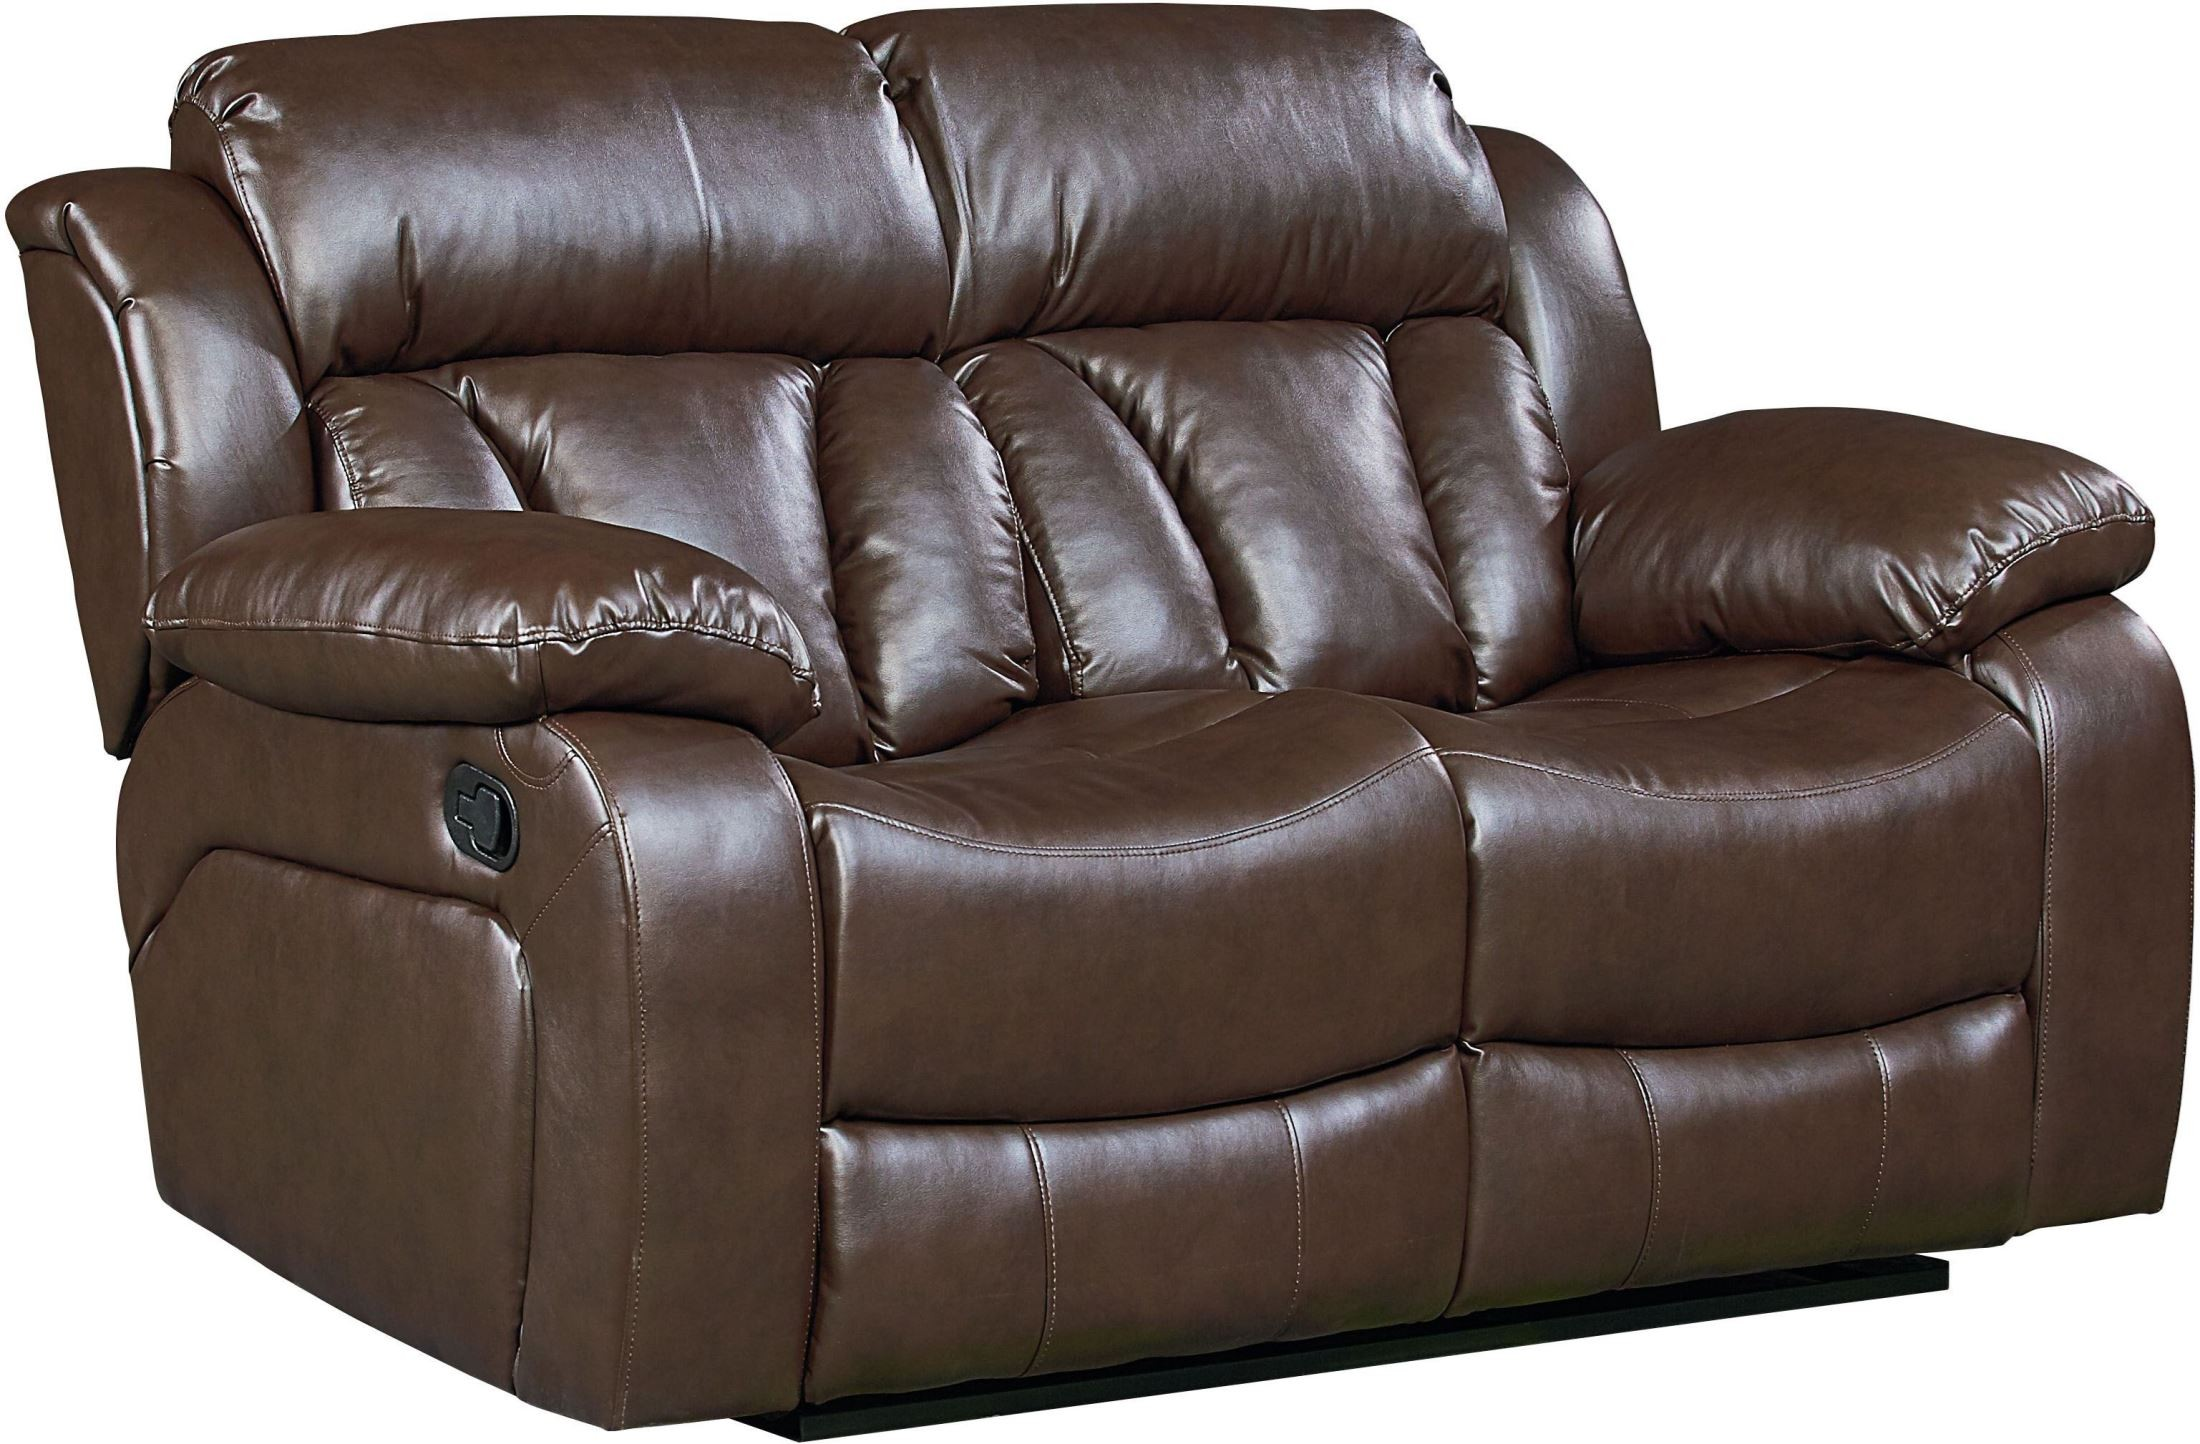 North Shore Chocolate Brown Reclining Loveseat From Standard Furniture Coleman Furniture